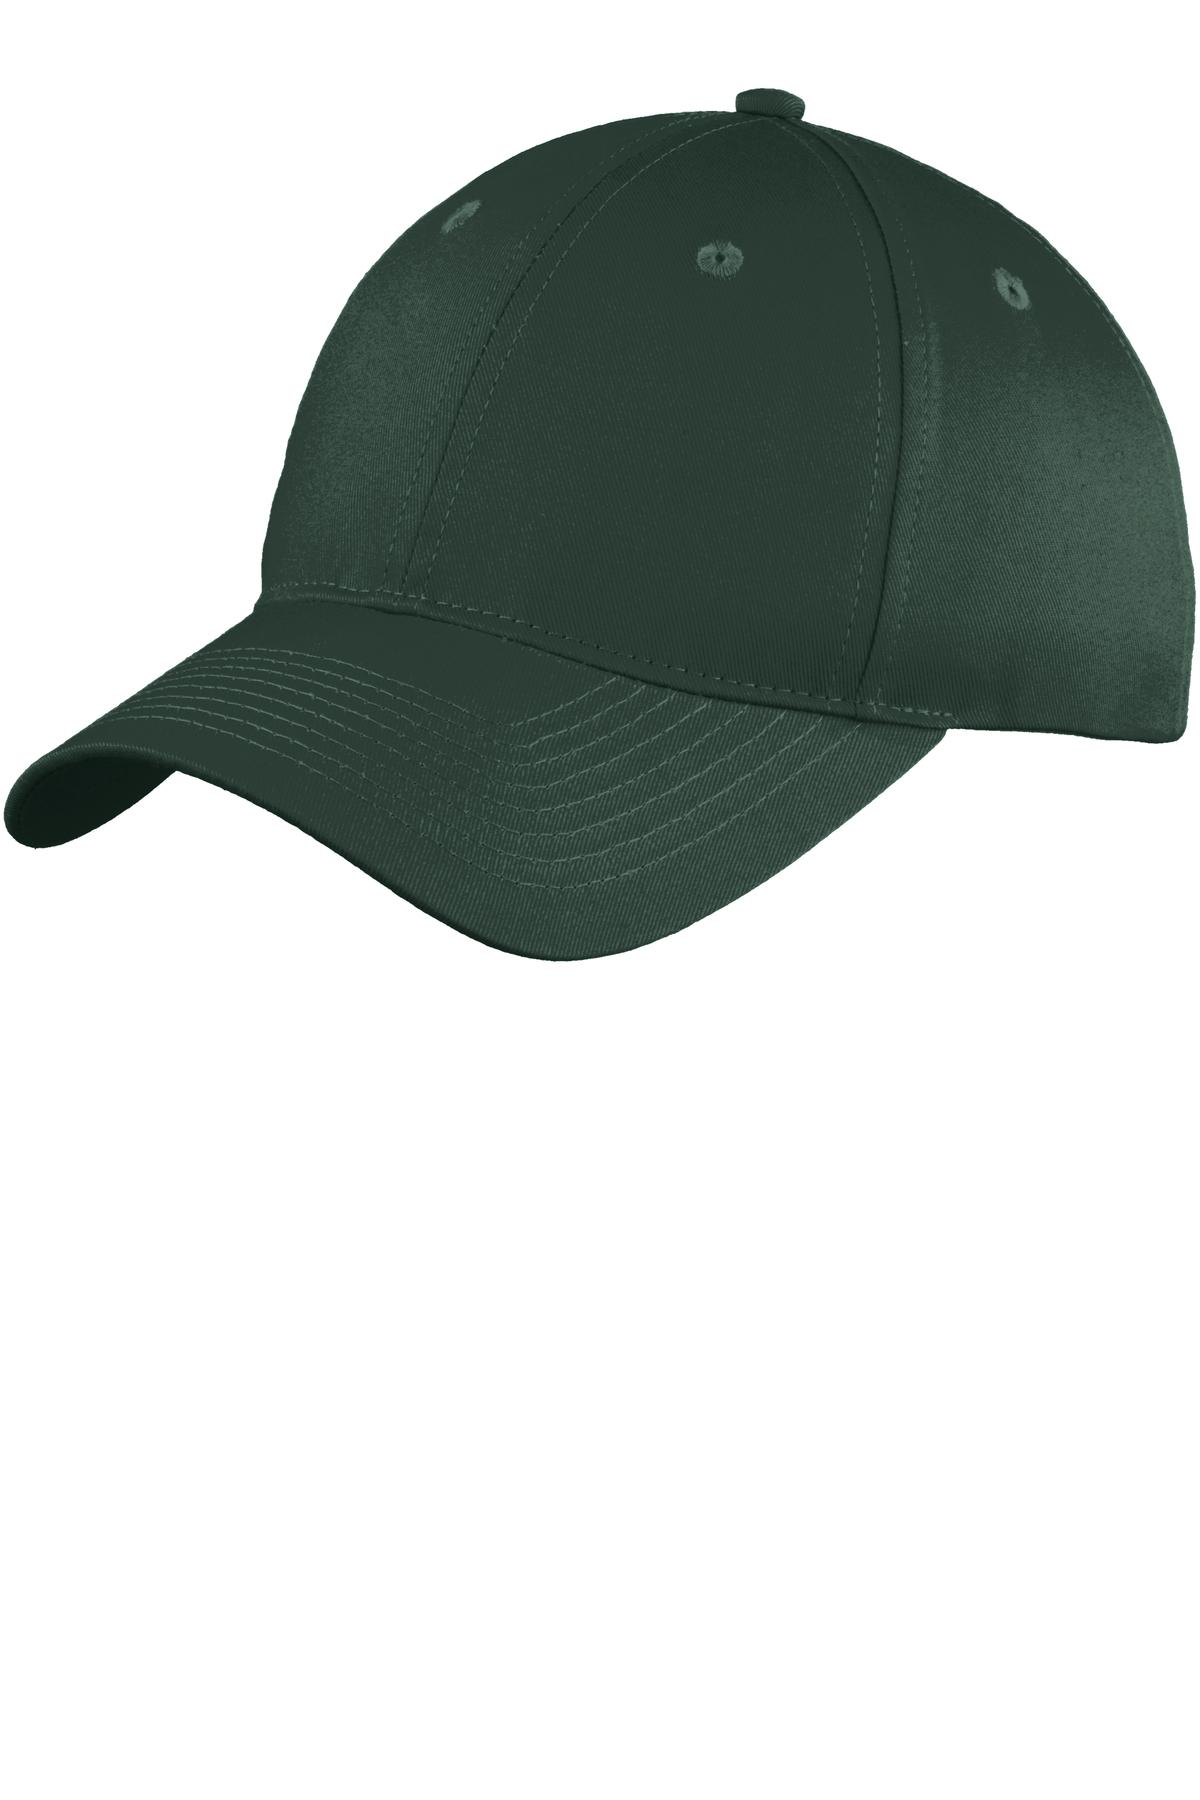 Port & Company ®  Six-Panel Unstructured Twill Cap. C914 - Hunter